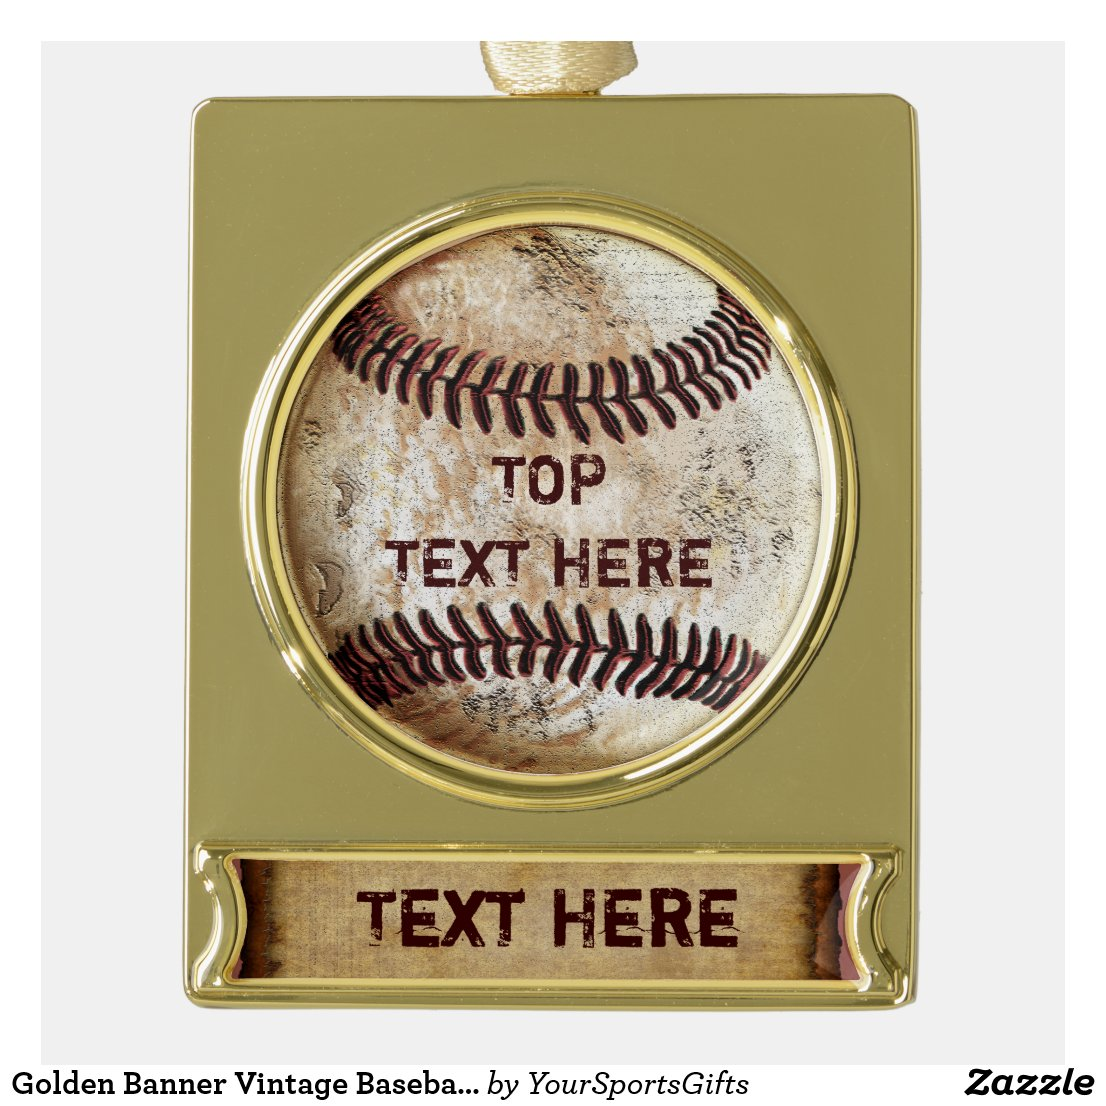 Golden Banner Vintage Baseball Ornaments Two TEXT